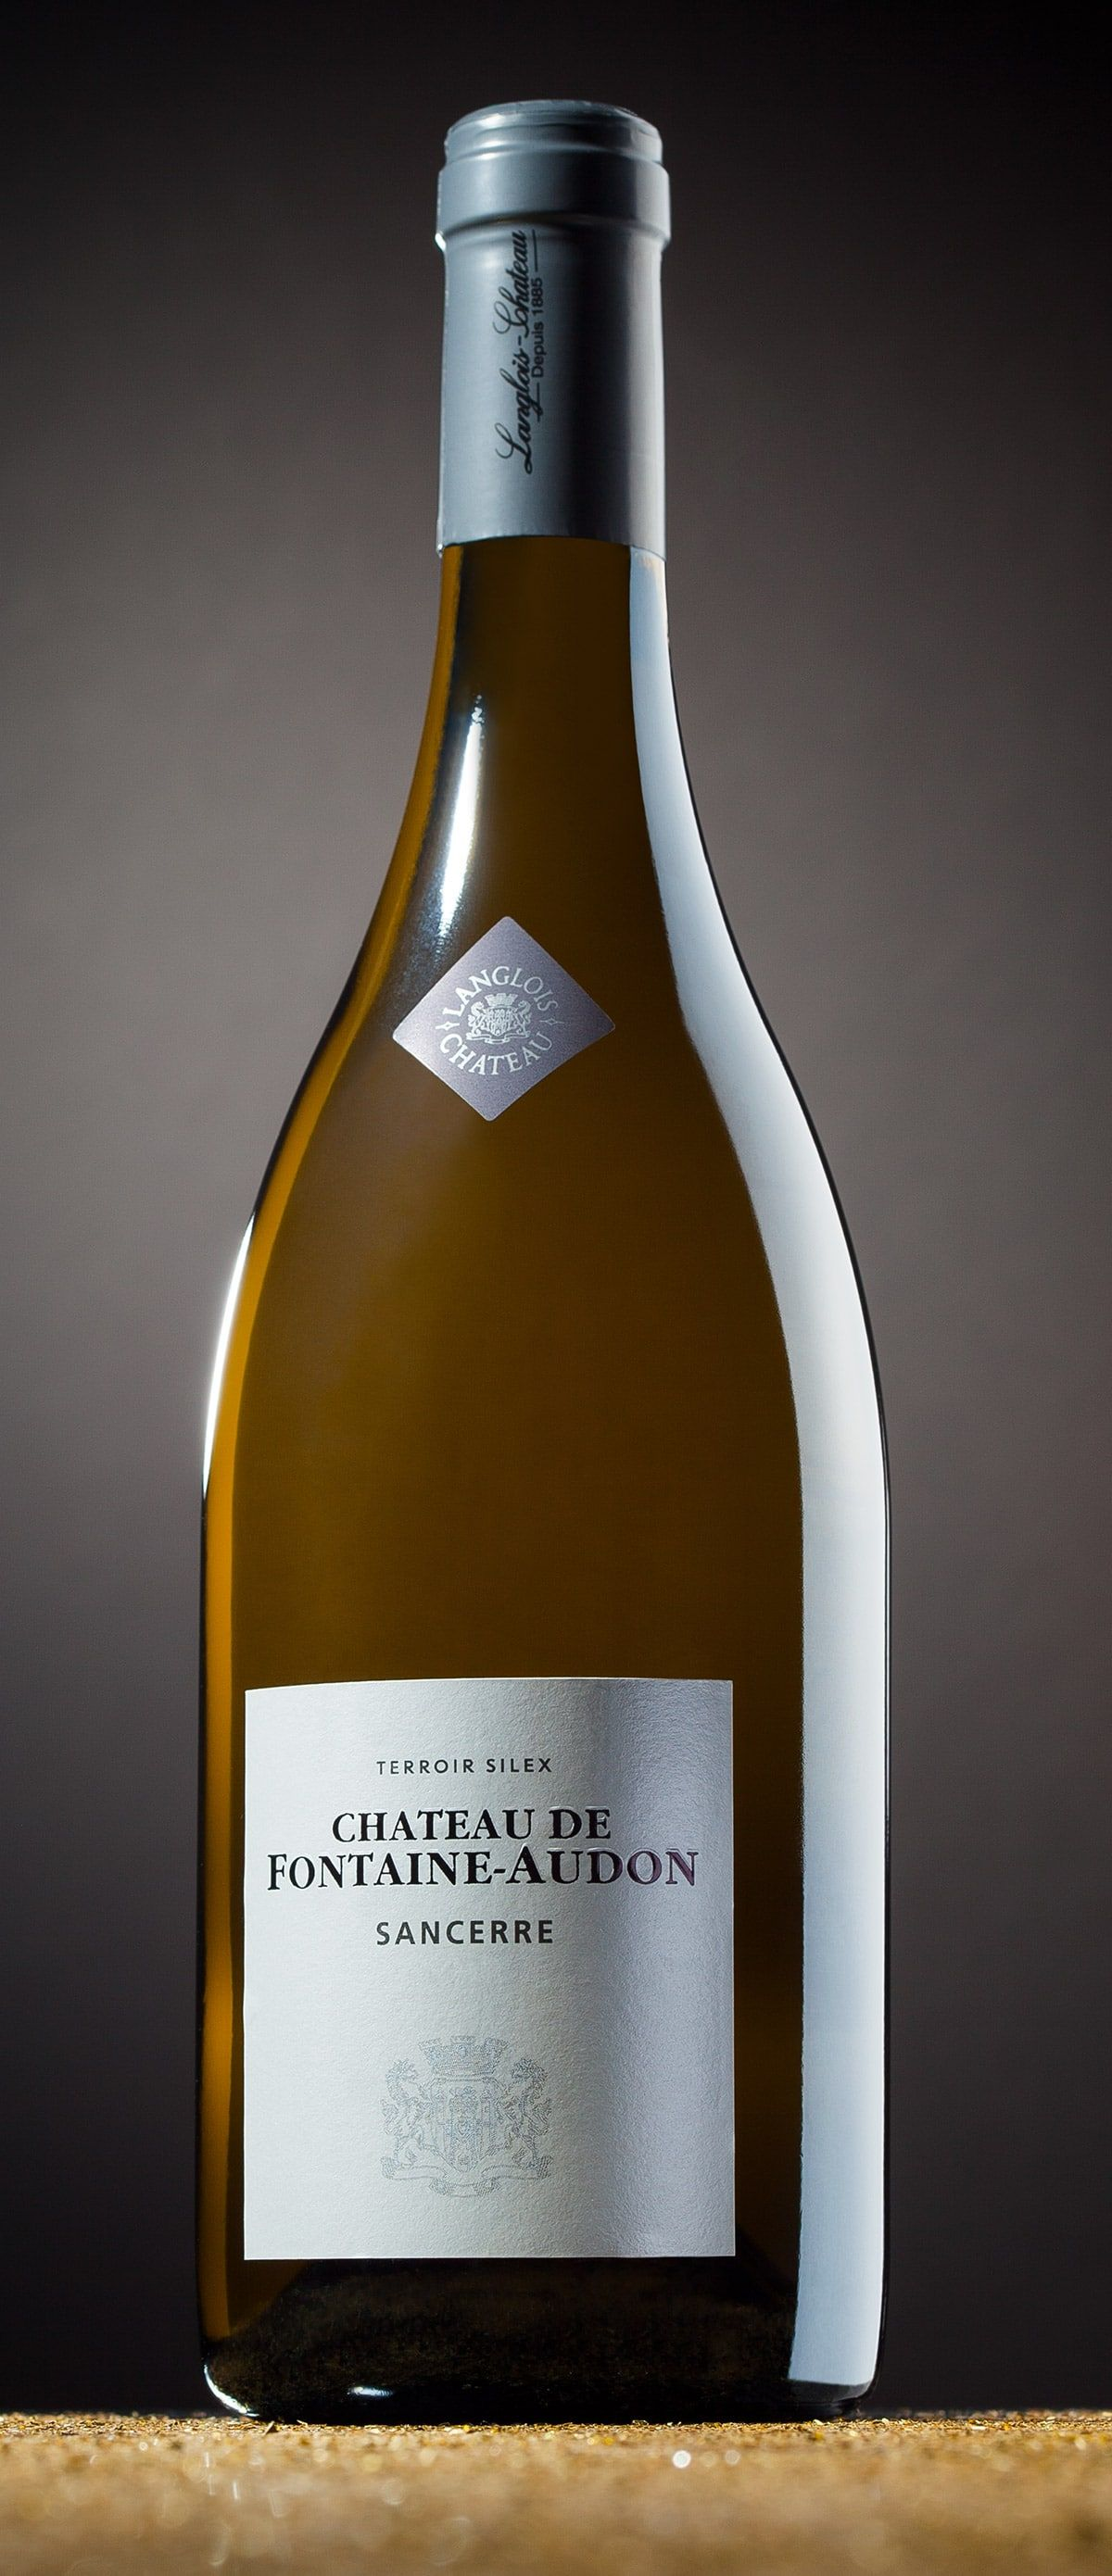 Our Crémants Loire